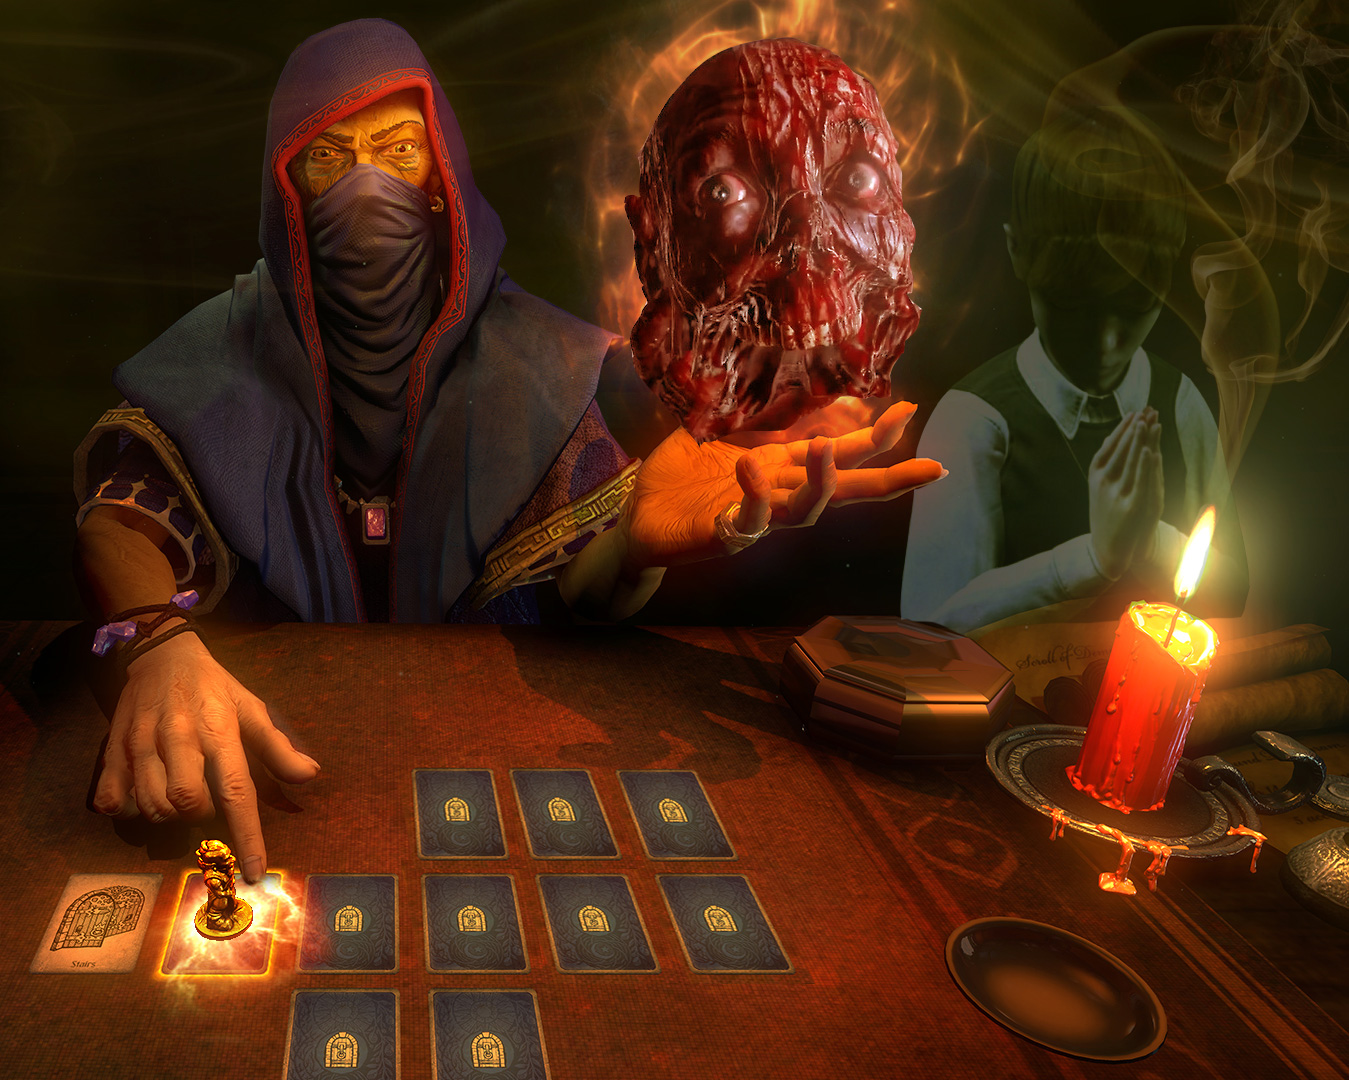 44 – Outlast 2 / Hand of fate